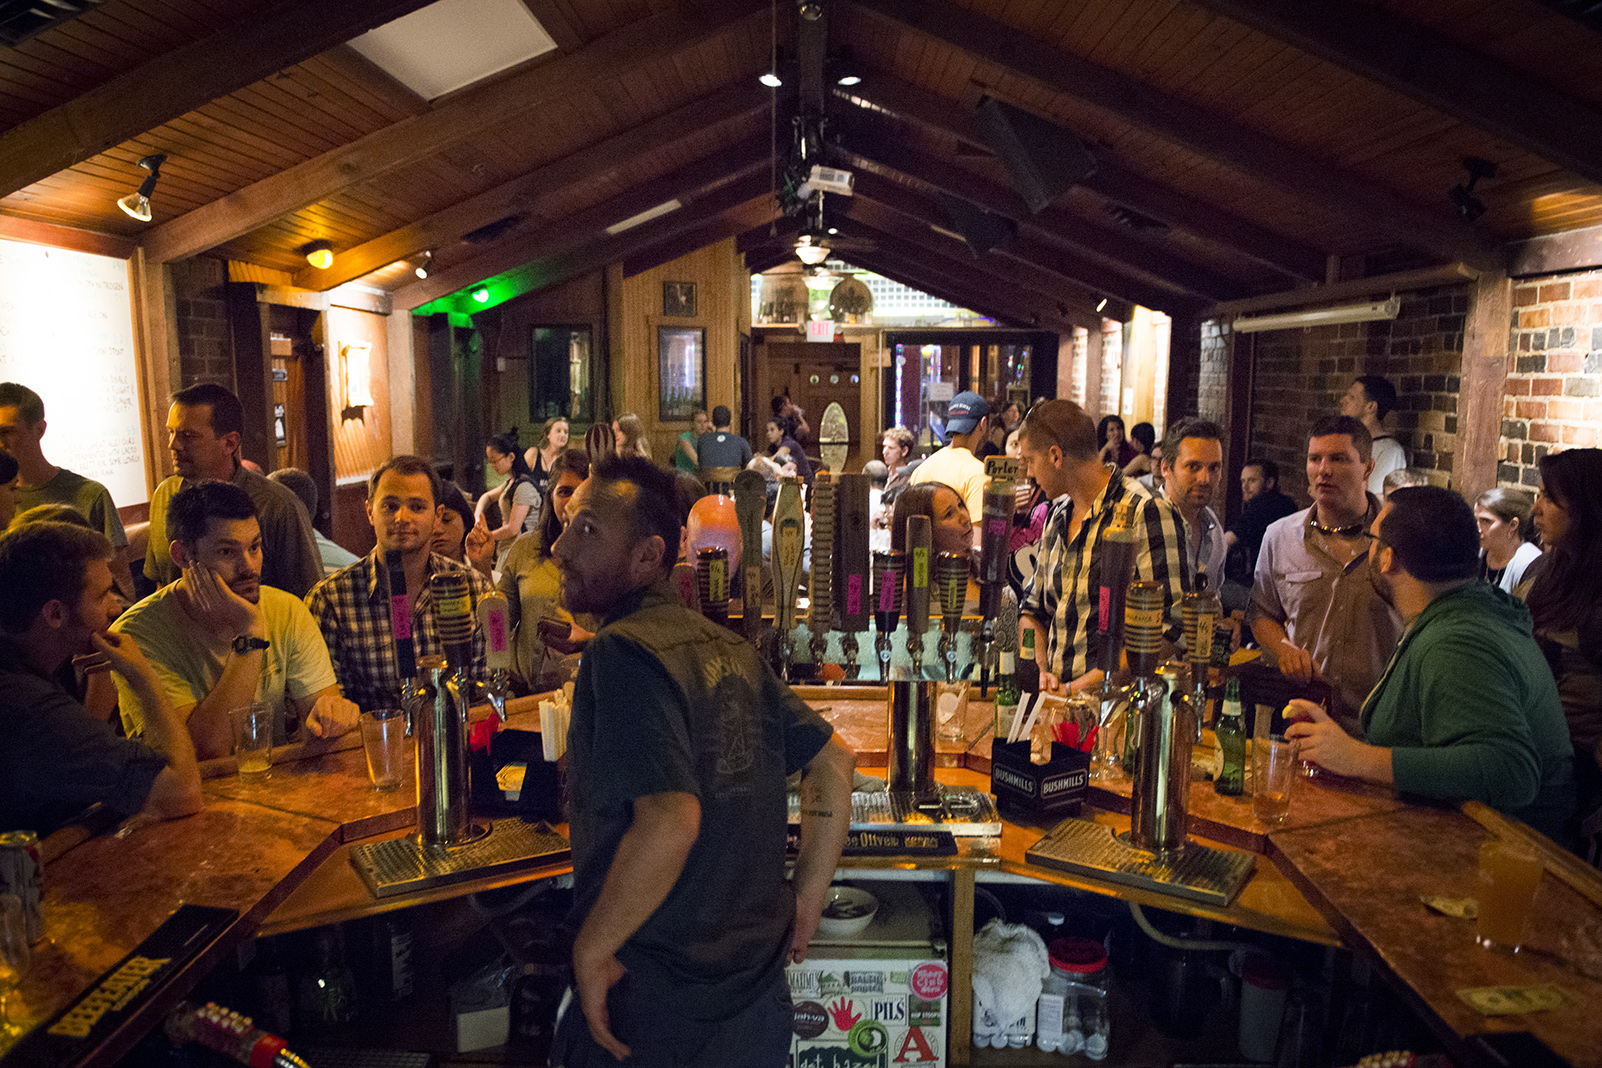 Jackie O's is packed on Friday, August 29, 2014 in Athens, Ohio.